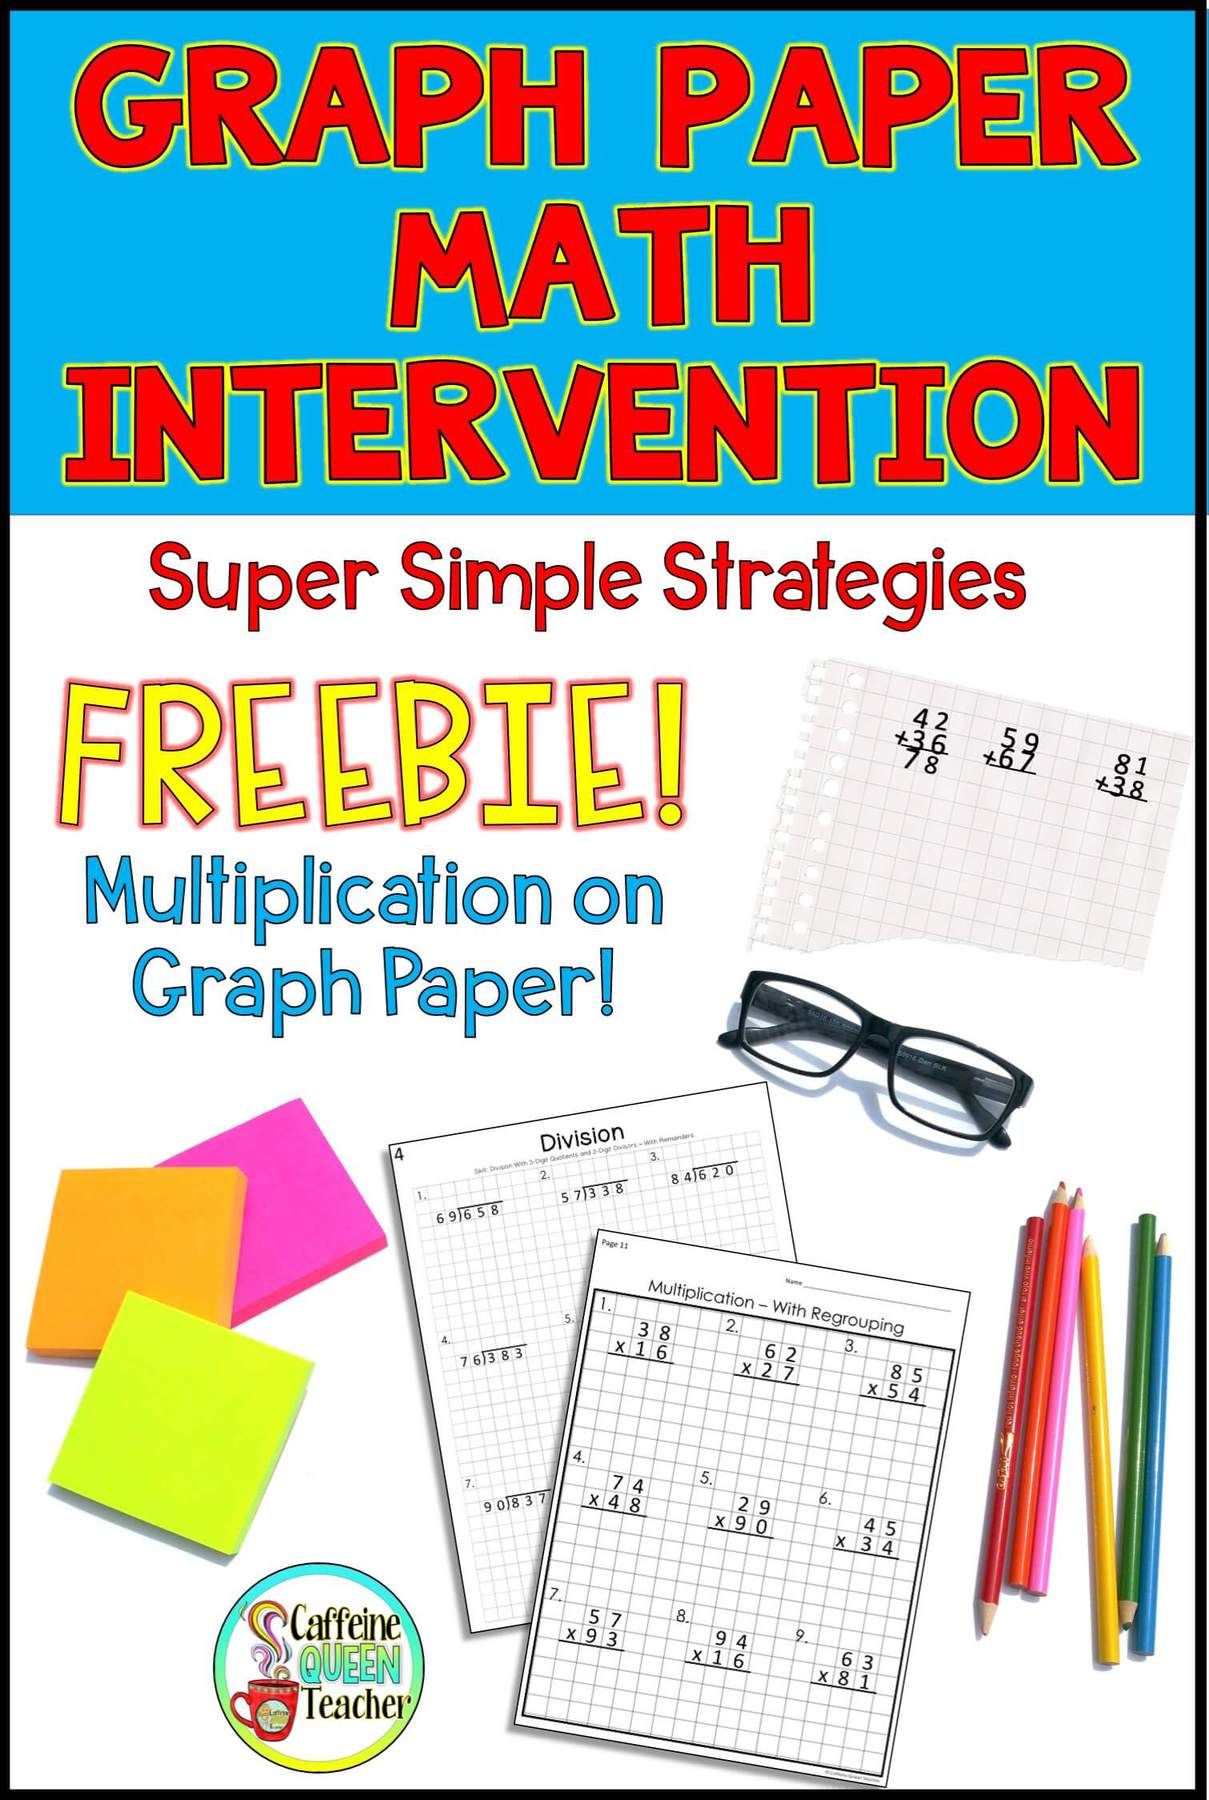 graphic regarding Cubes Math Strategy Printable identified as Graph Paper Math Intervention - Caffeine Queen Instructor